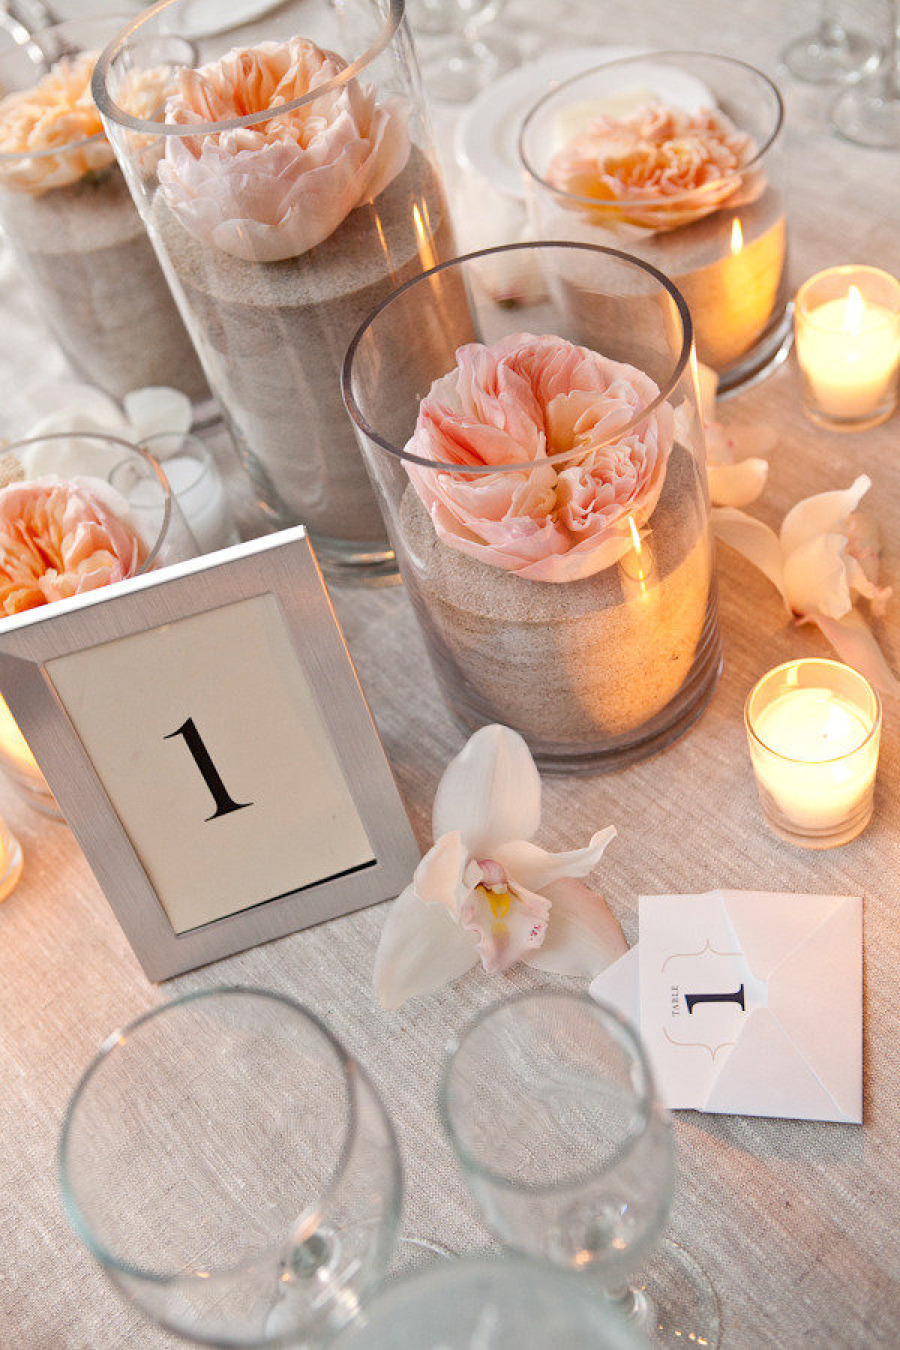 sand in votive candle holders | photo: tory williams | via decorate for beach wedding ideas from emmalinebride.com